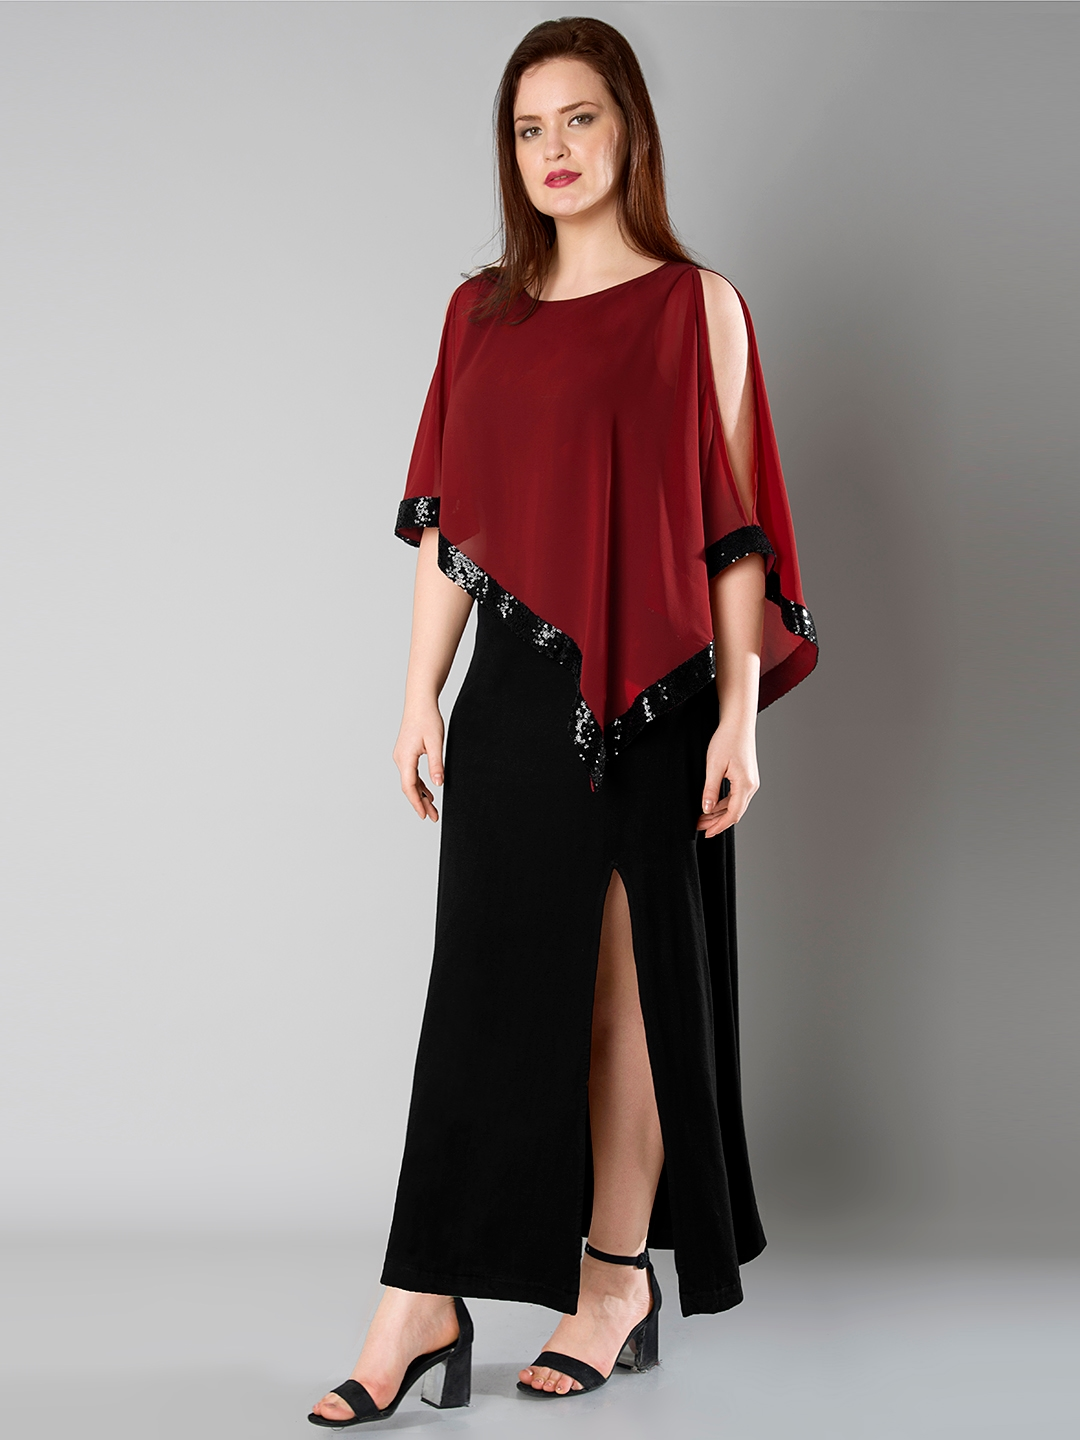 469bf695cb2 Buy FabAlley Curve Women Red   Black Sequinned Cape Maxi Dress ...